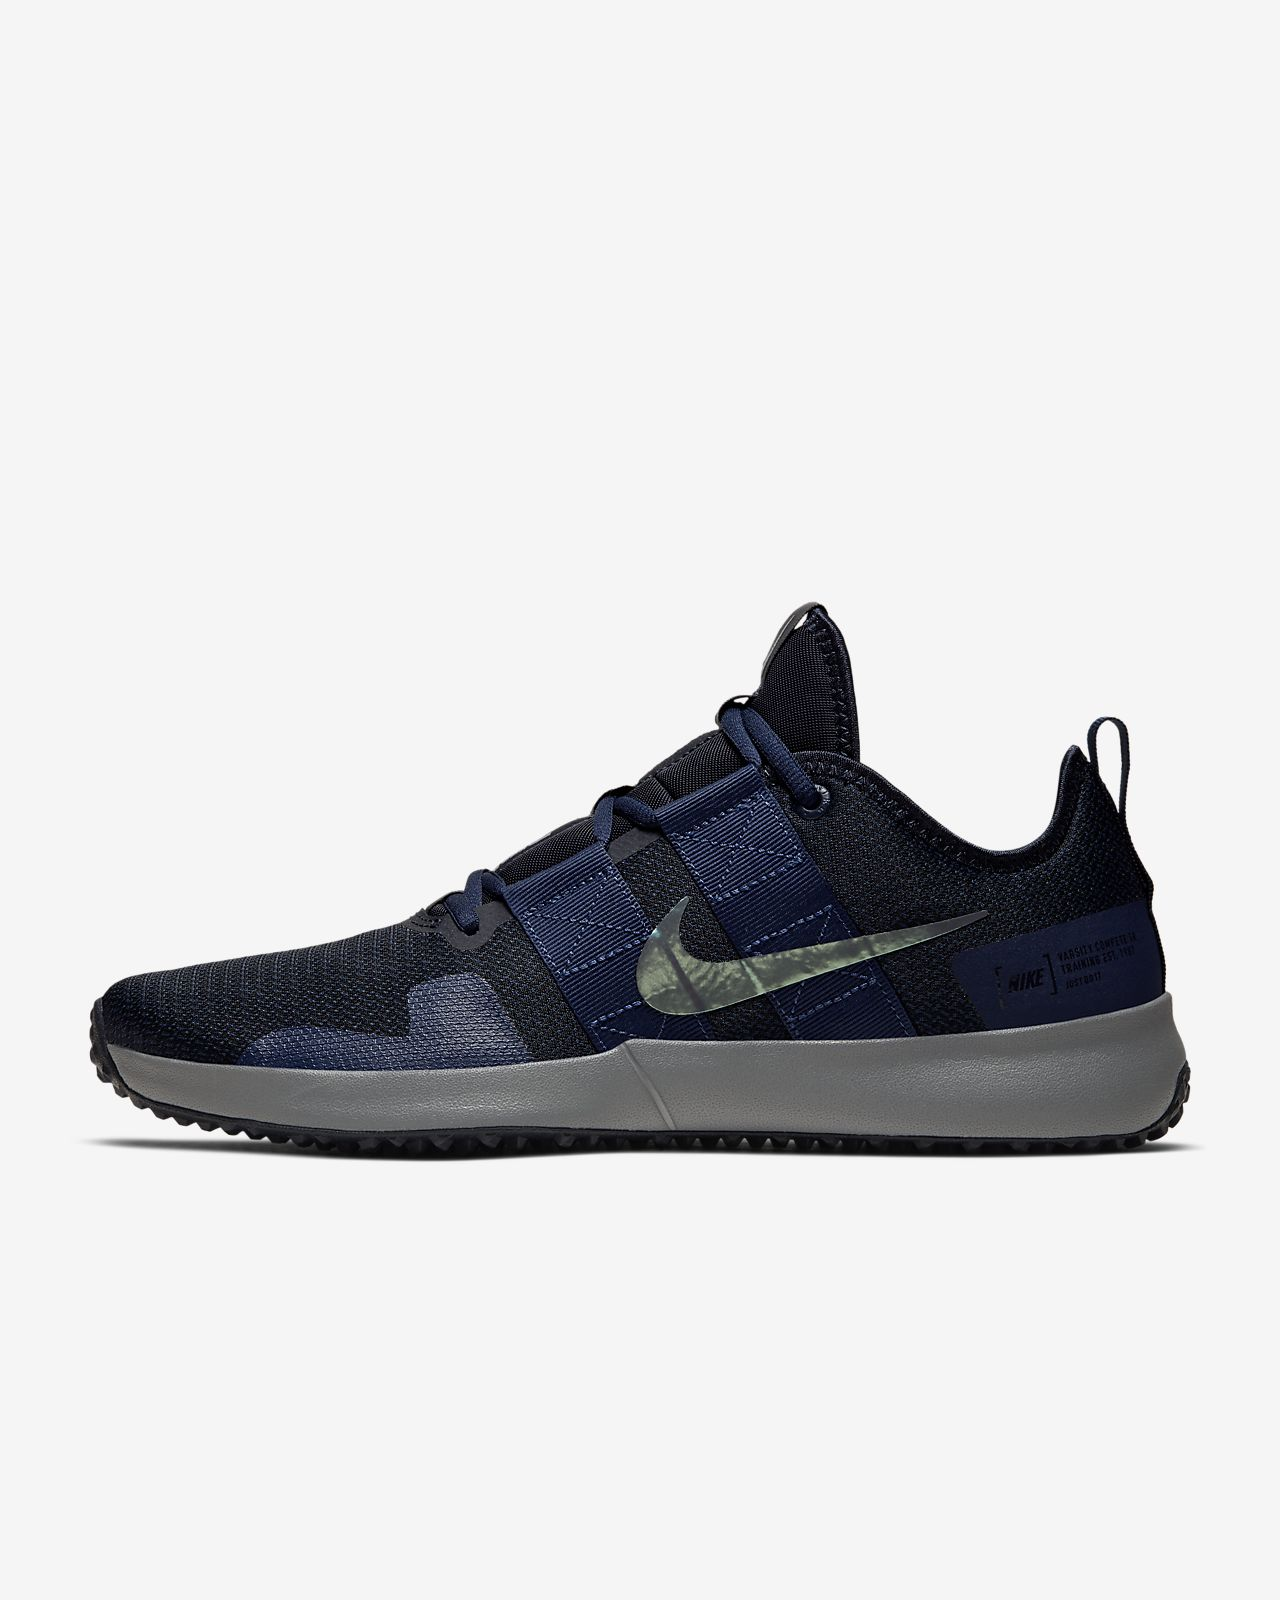 Minimus Zapatillas Mujer Nike Air Zoom Fit 2 Negrogris